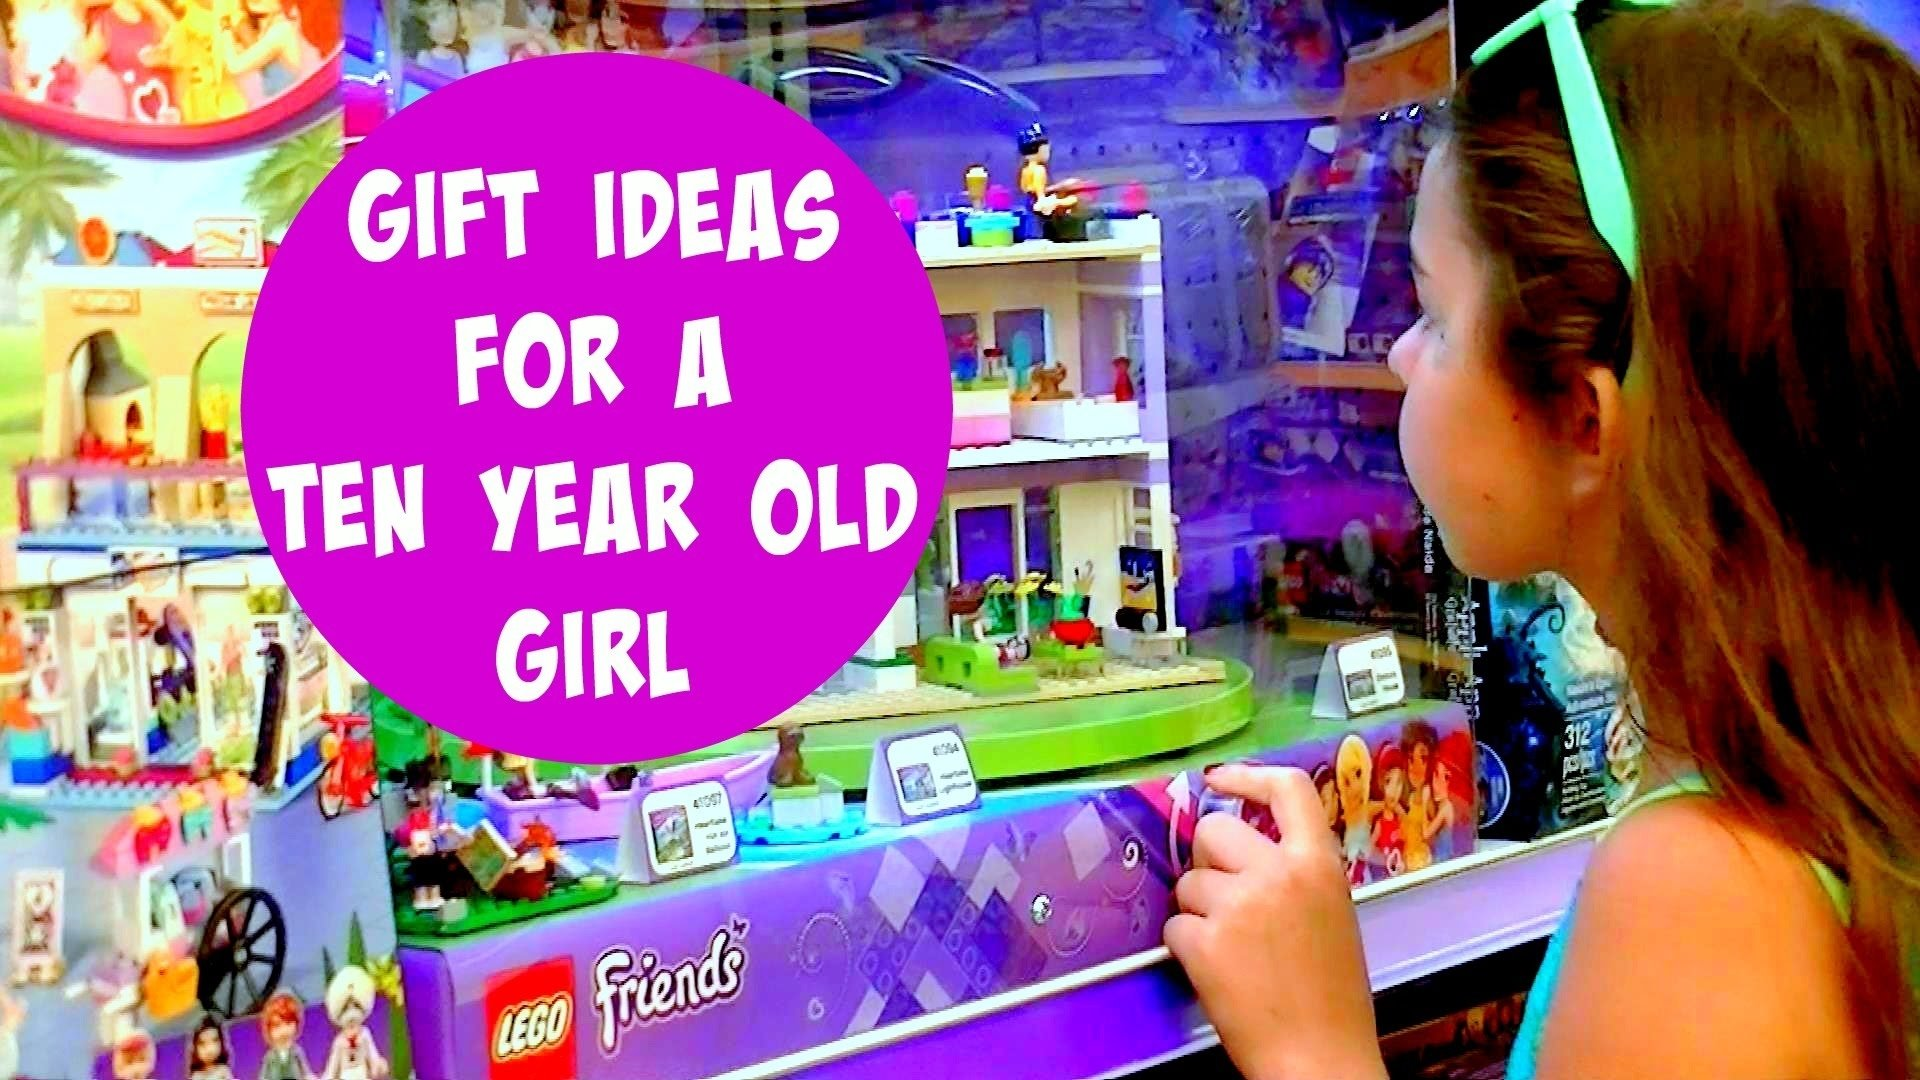 10 Ideal Gift Ideas For A 10 Yr Old Girl birthday gift ideas for a 10 year old girl under 30 youtube 19